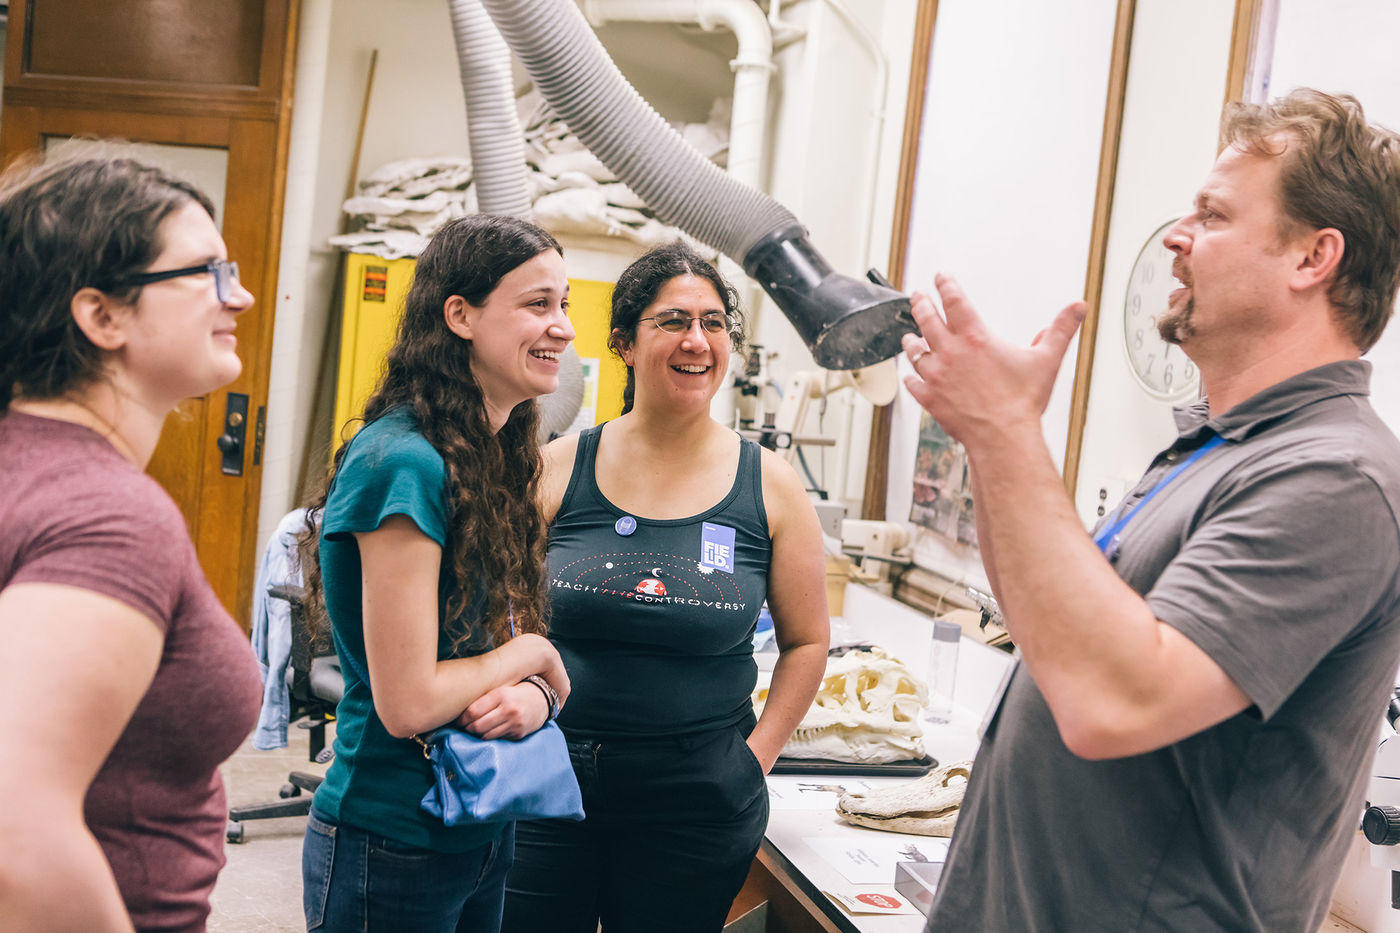 A group of four people stand and talk in a lab. They're gathered around a table that displays several fossil specimens. Cabinets, a ventilation duct, and door are visible in the background.